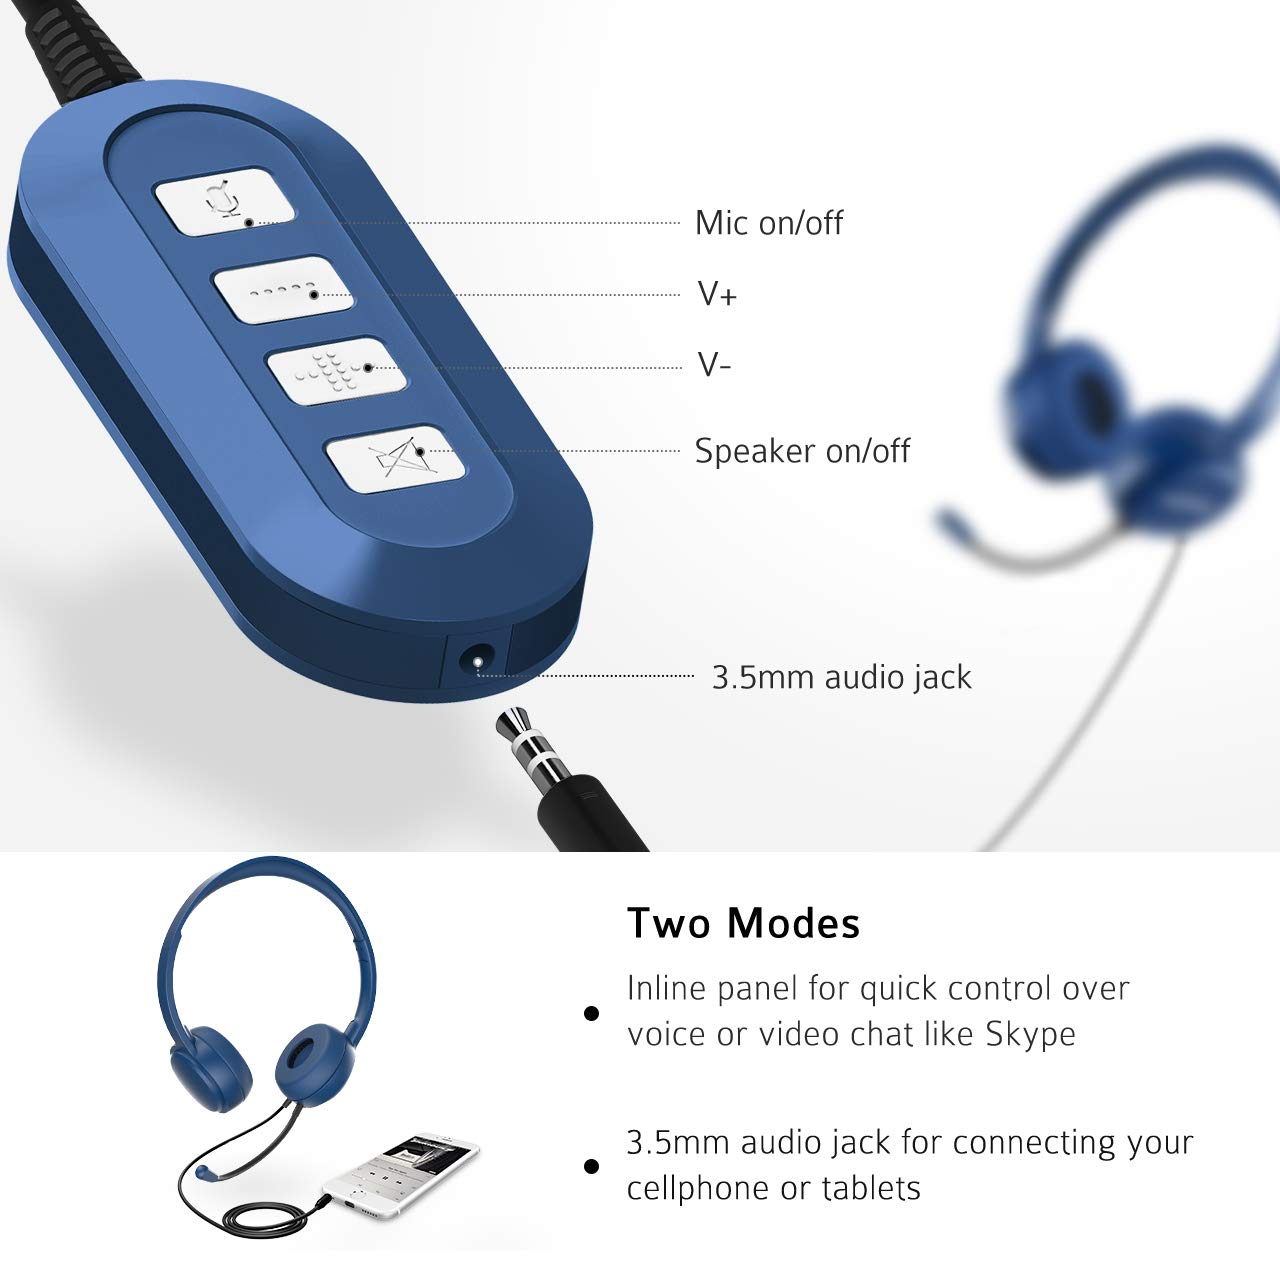 Mpow 071 USB Headset 3.5mm Computer Headset with Microphone Noise Cancelling bd05e85915